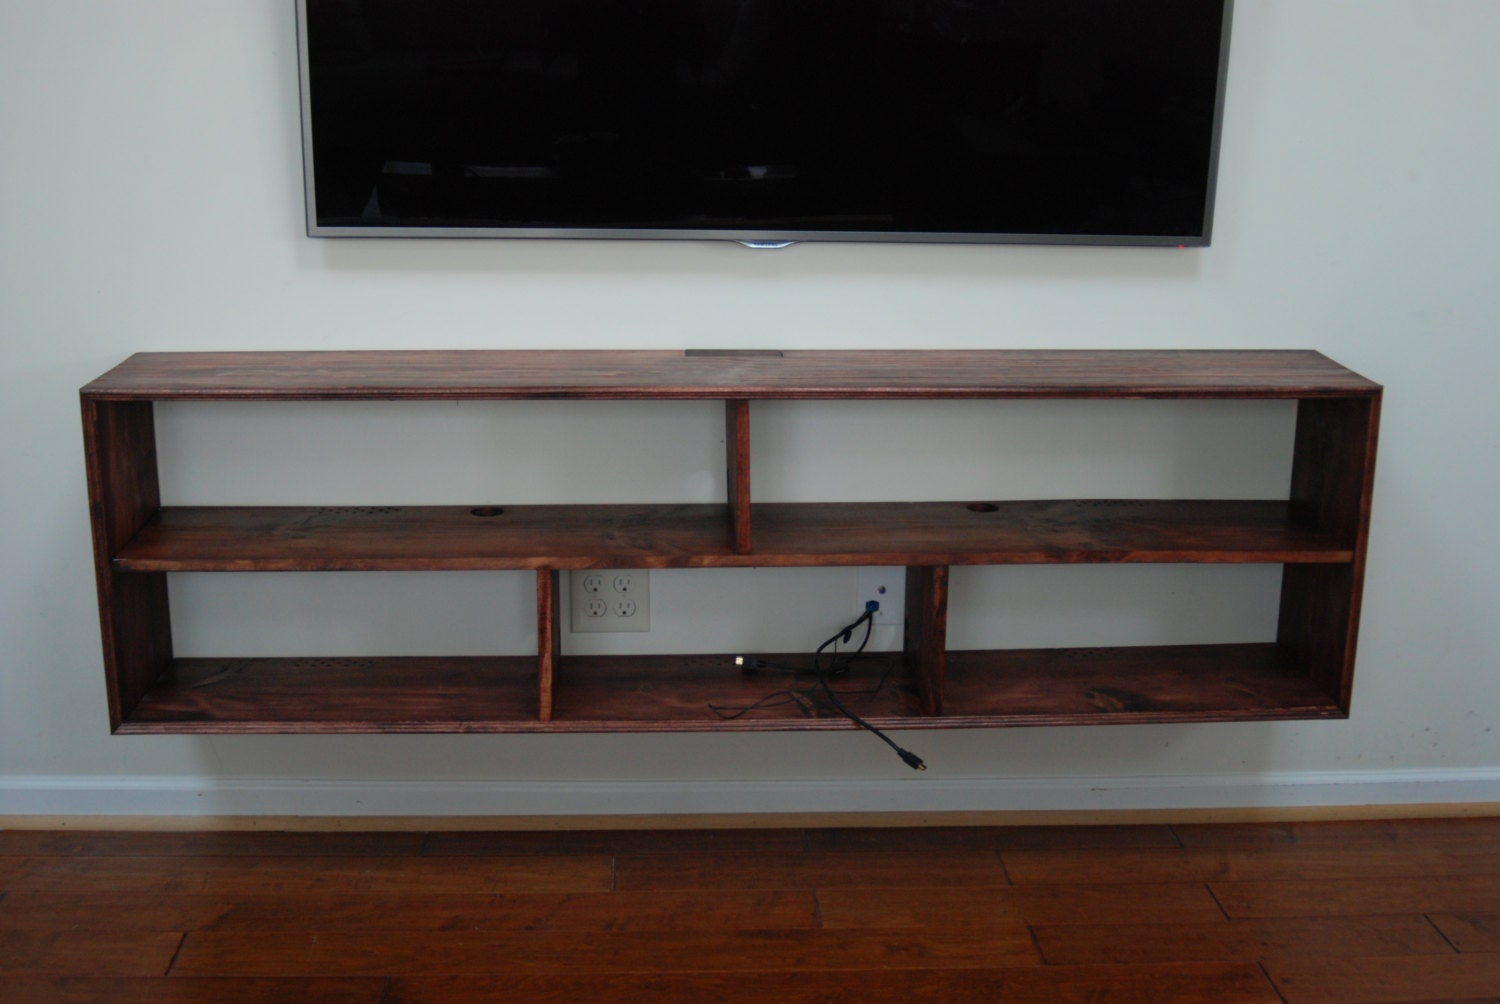 6 39 wall mounted media electronics shelf. Black Bedroom Furniture Sets. Home Design Ideas